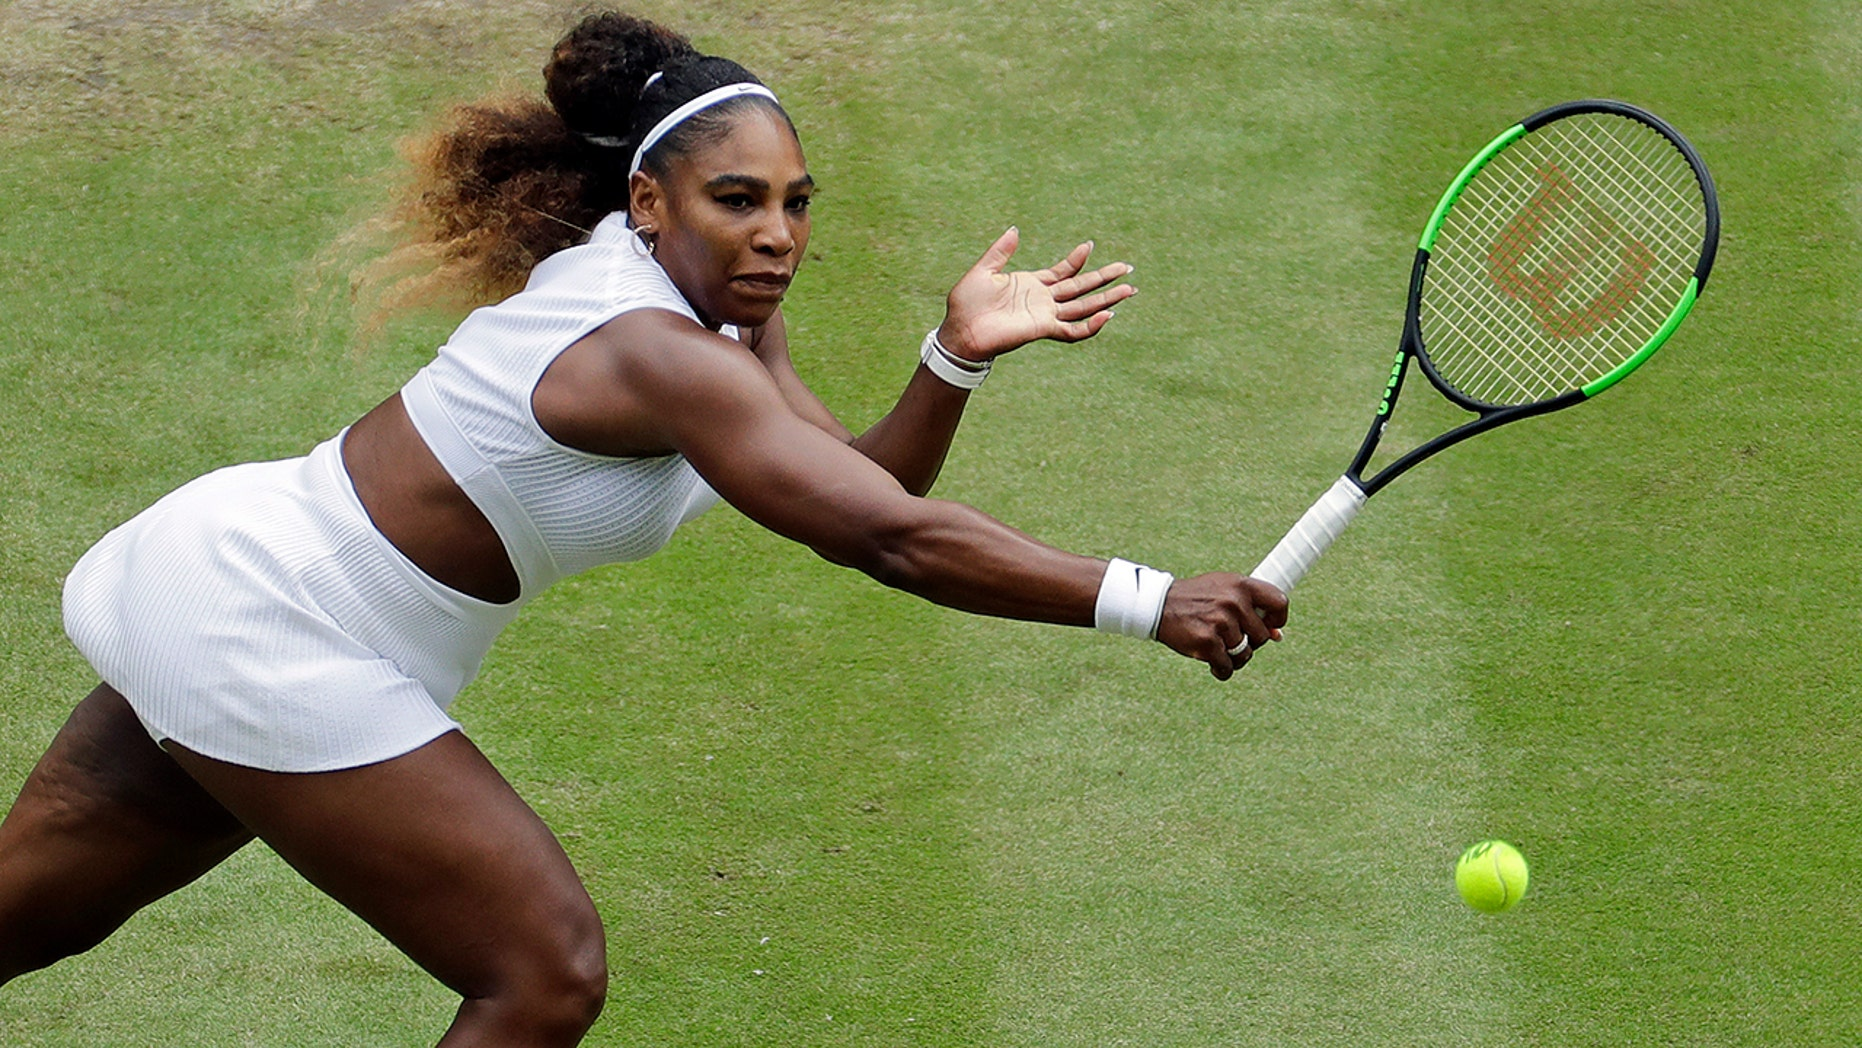 Every Grand Slam title won by Serena Williams